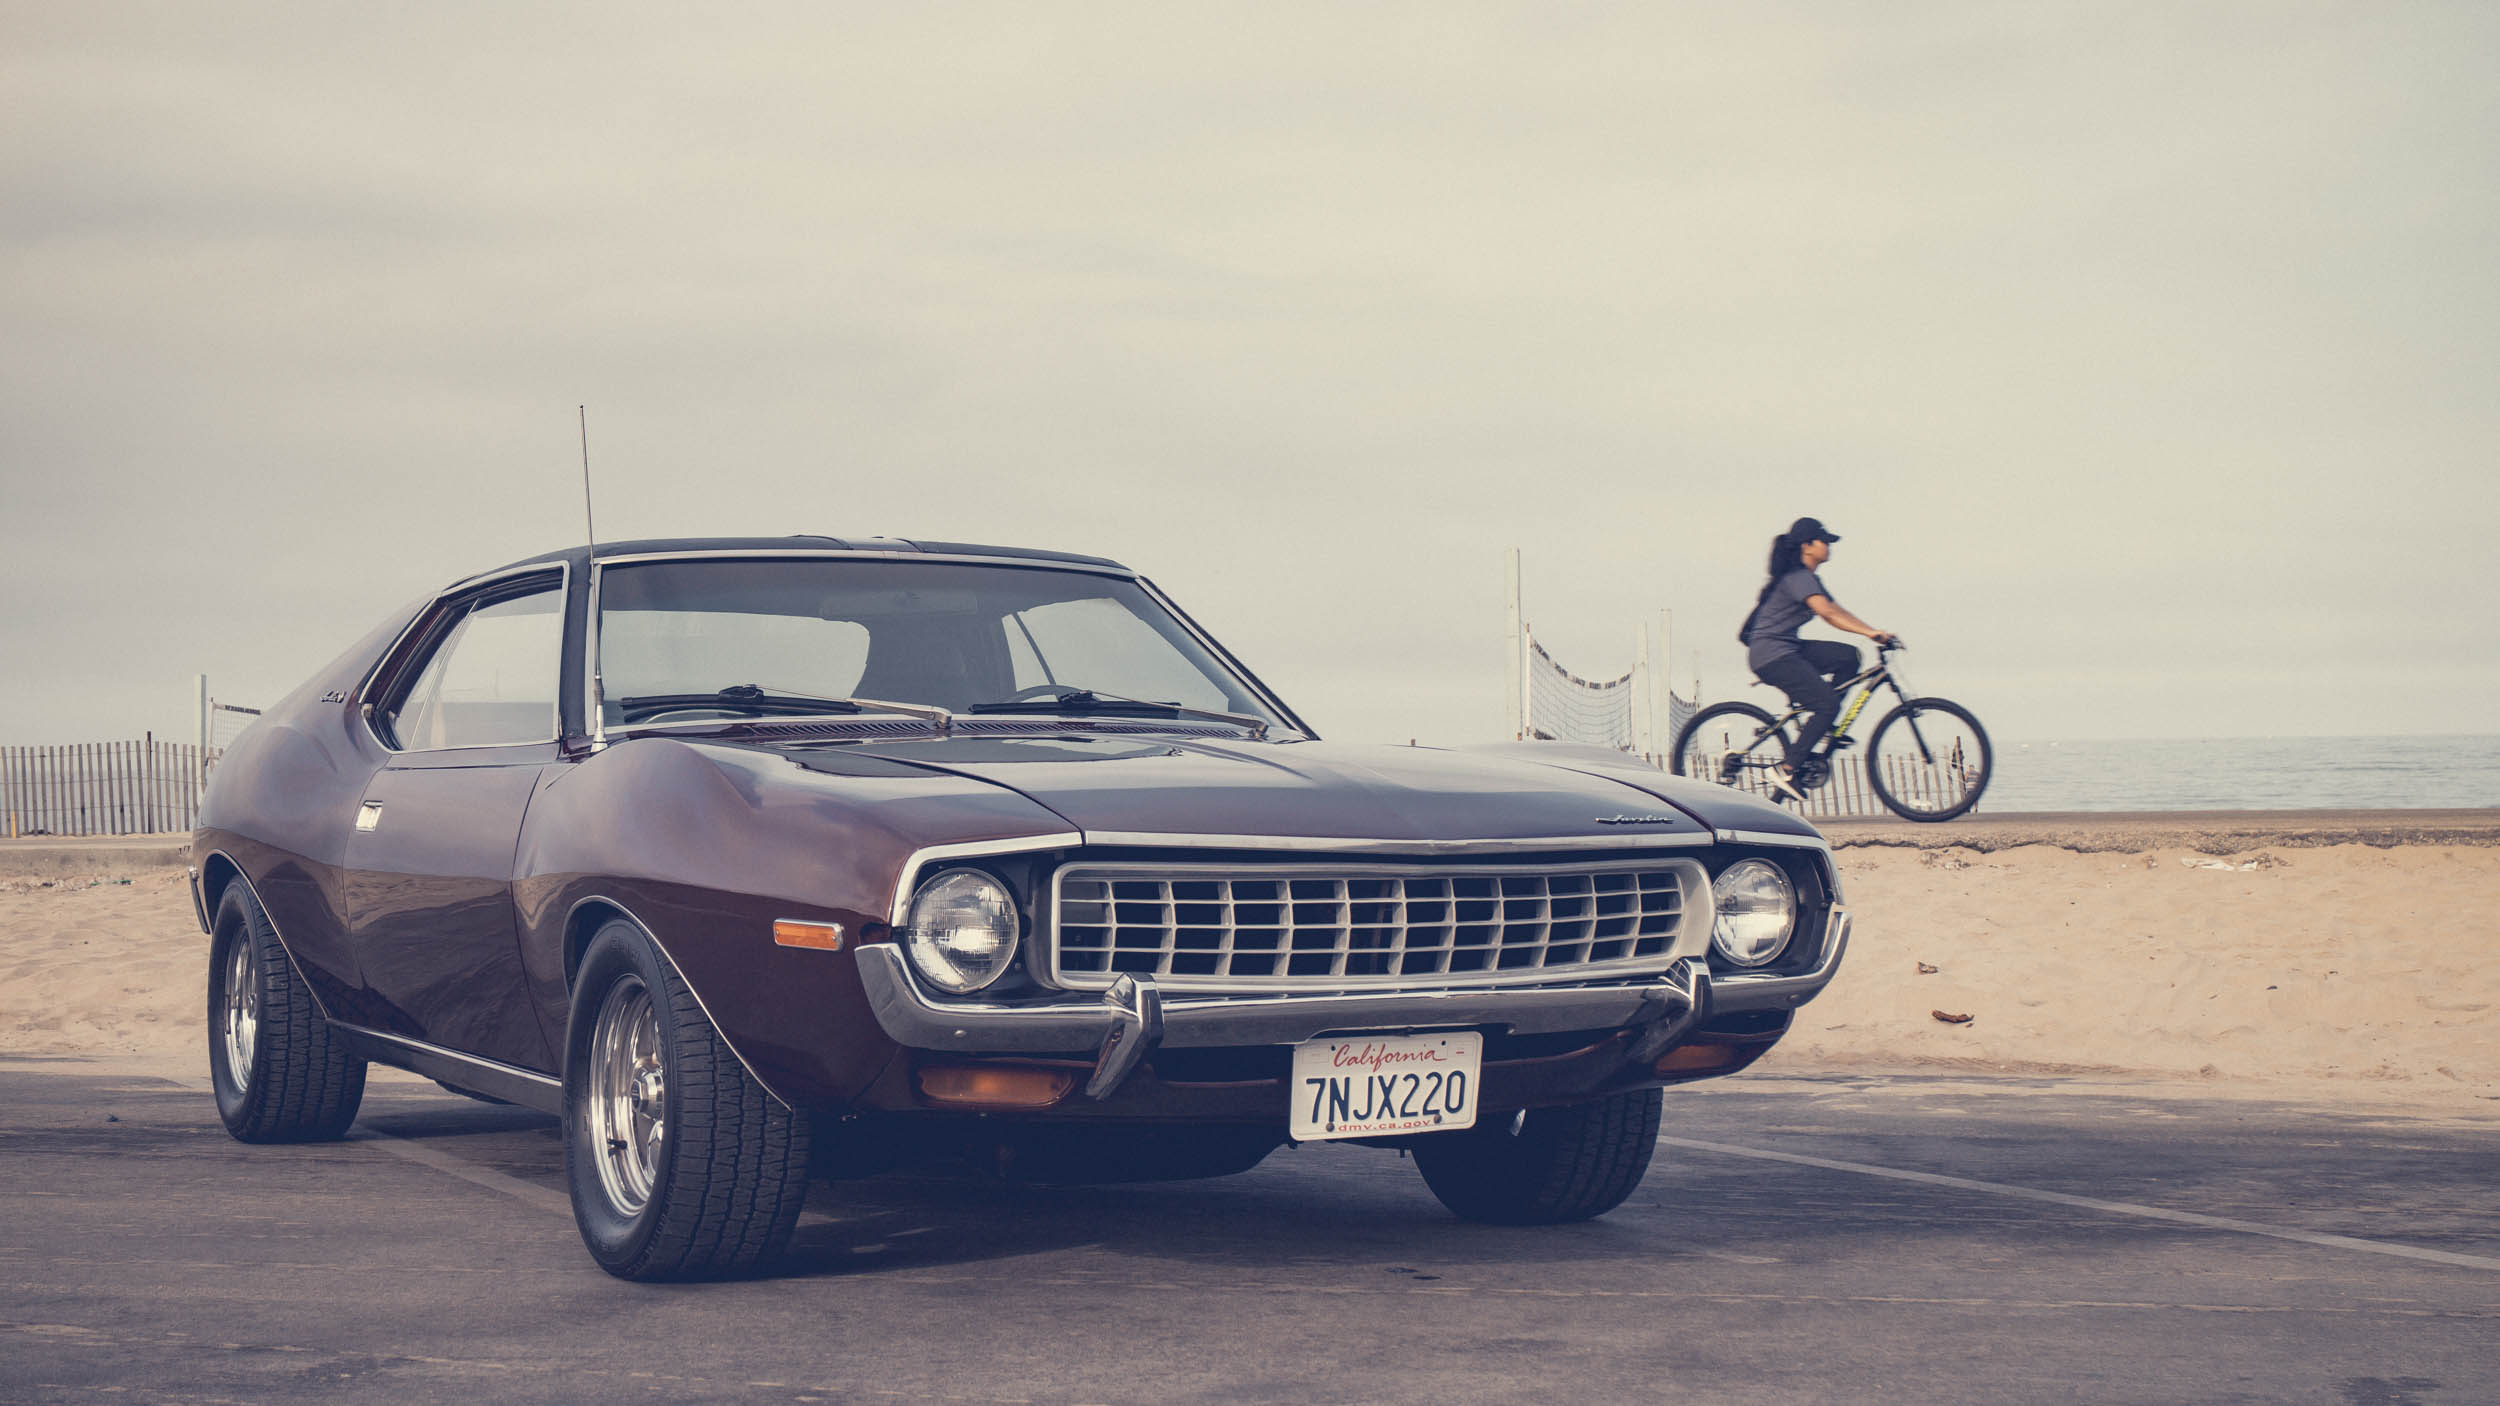 1972 AMC Javelin SST at the beach